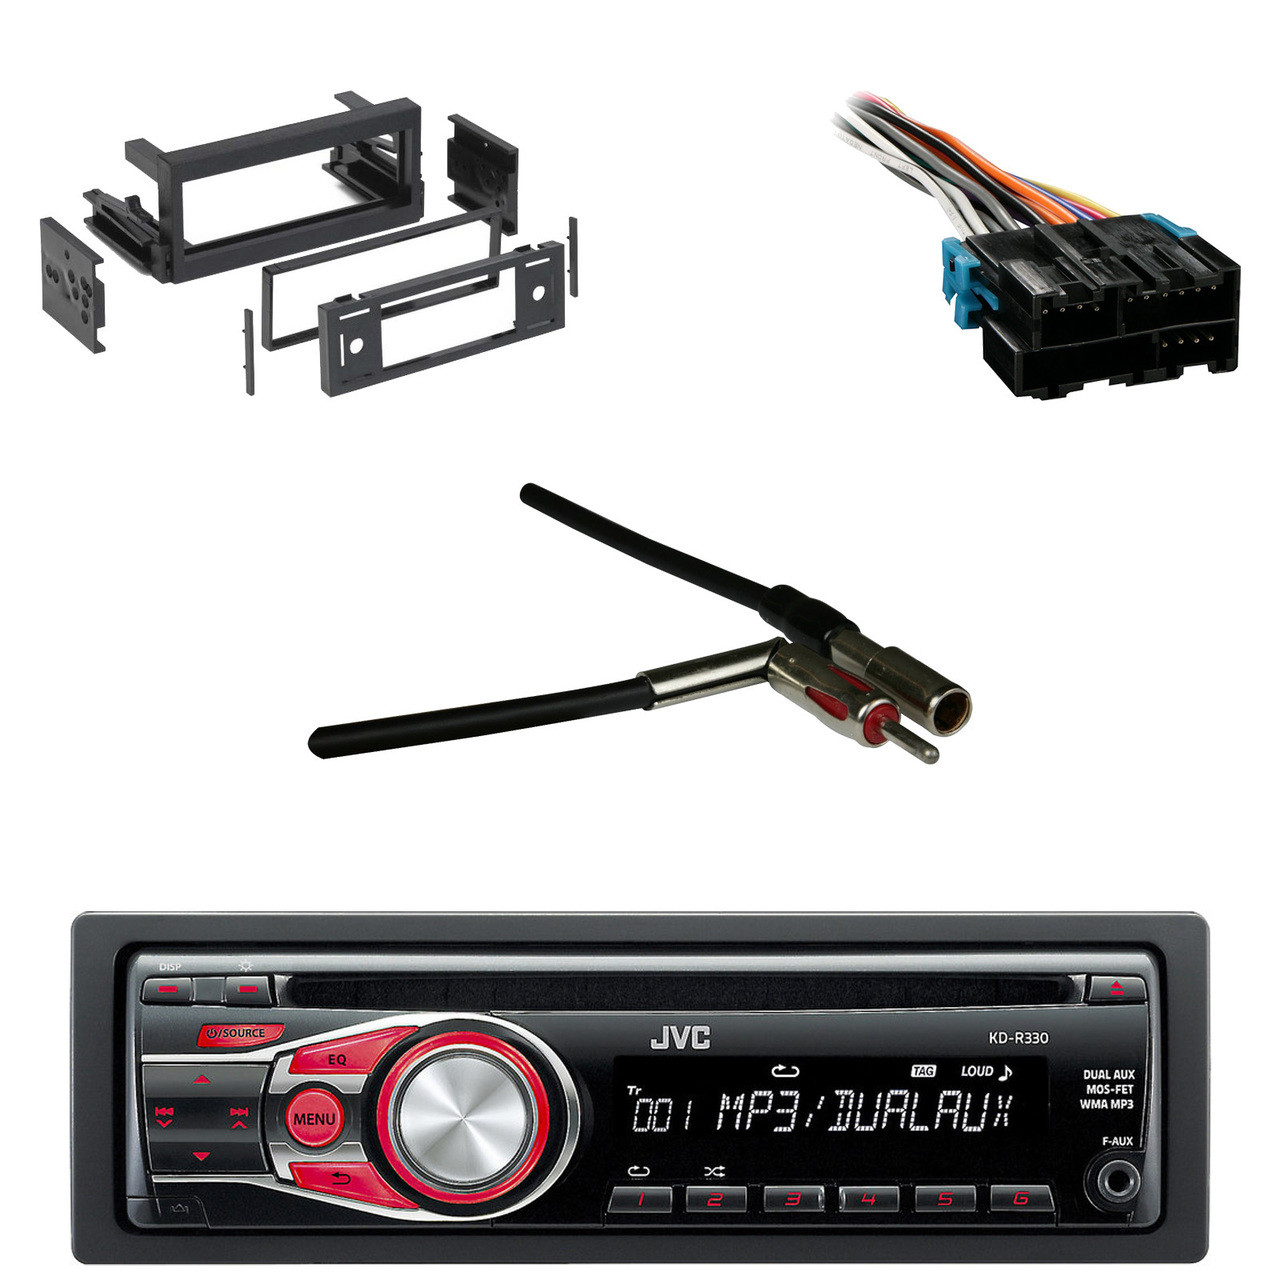 small resolution of jvc kdr330 cd aux car radio antenn adapter gm wire harness gm rh roadentertainment com wiring